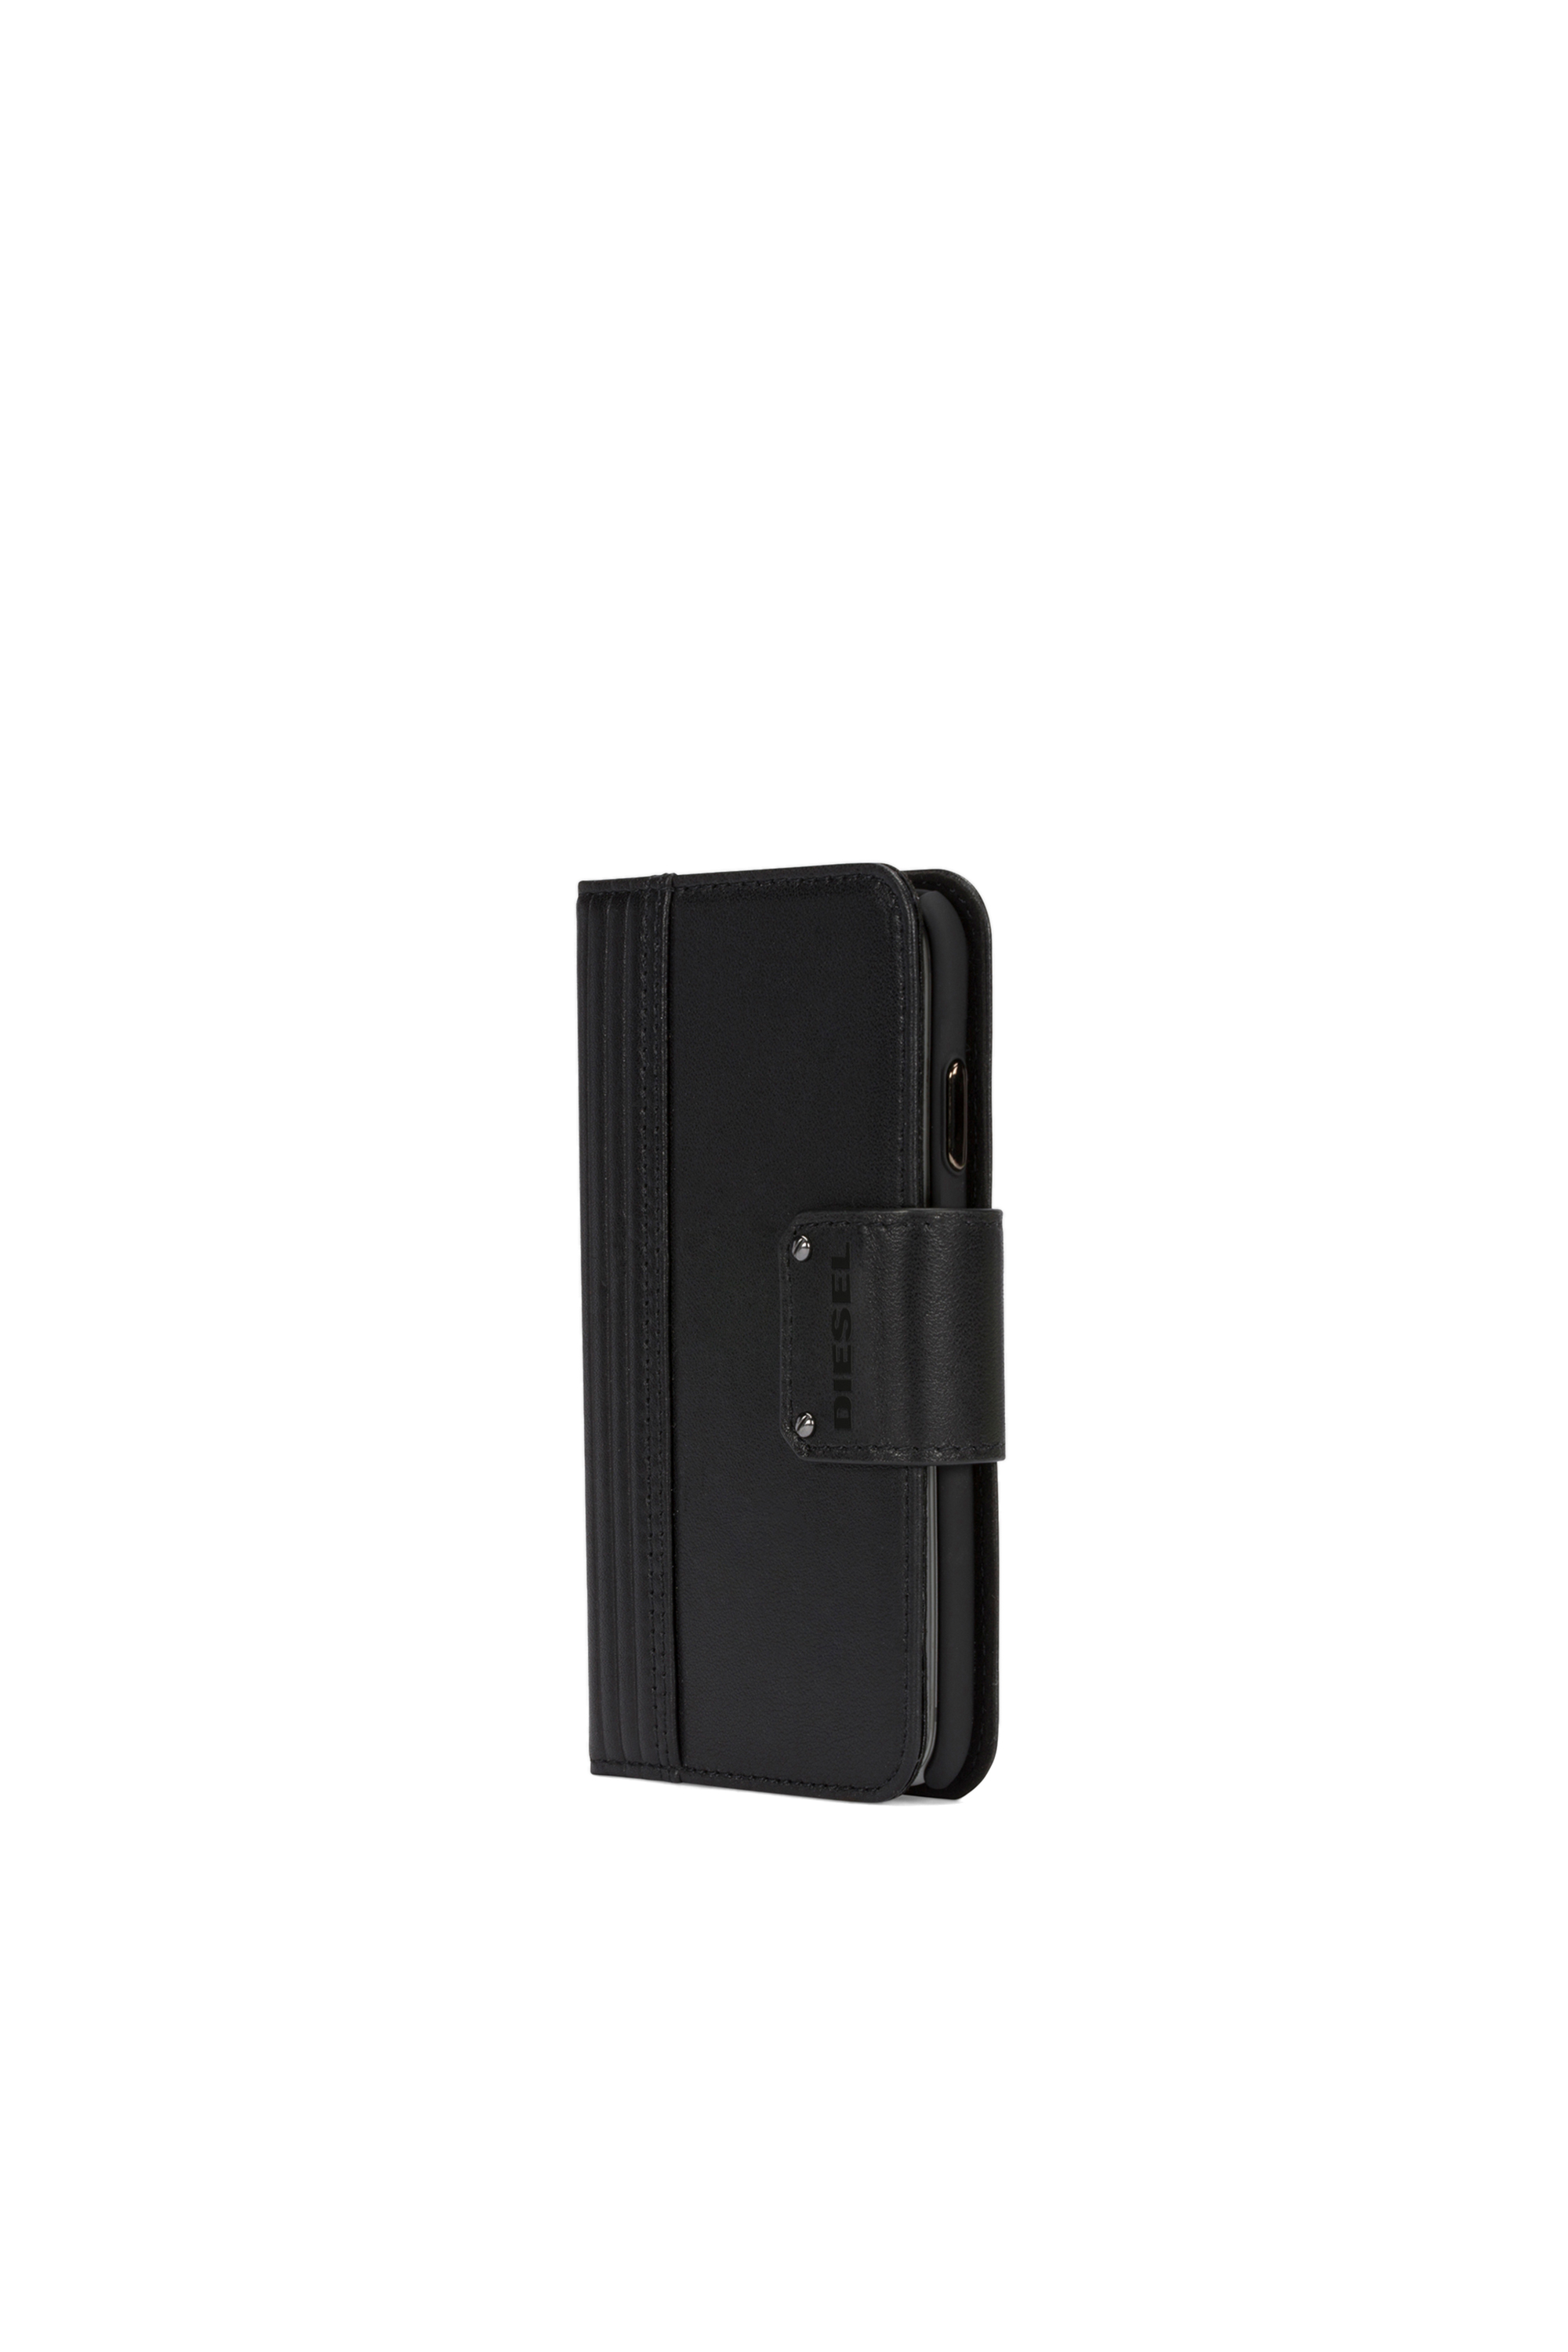 Diesel - BLACK LINED LEATHER IPHONE X FOLIO,  - Flip covers - Image 5